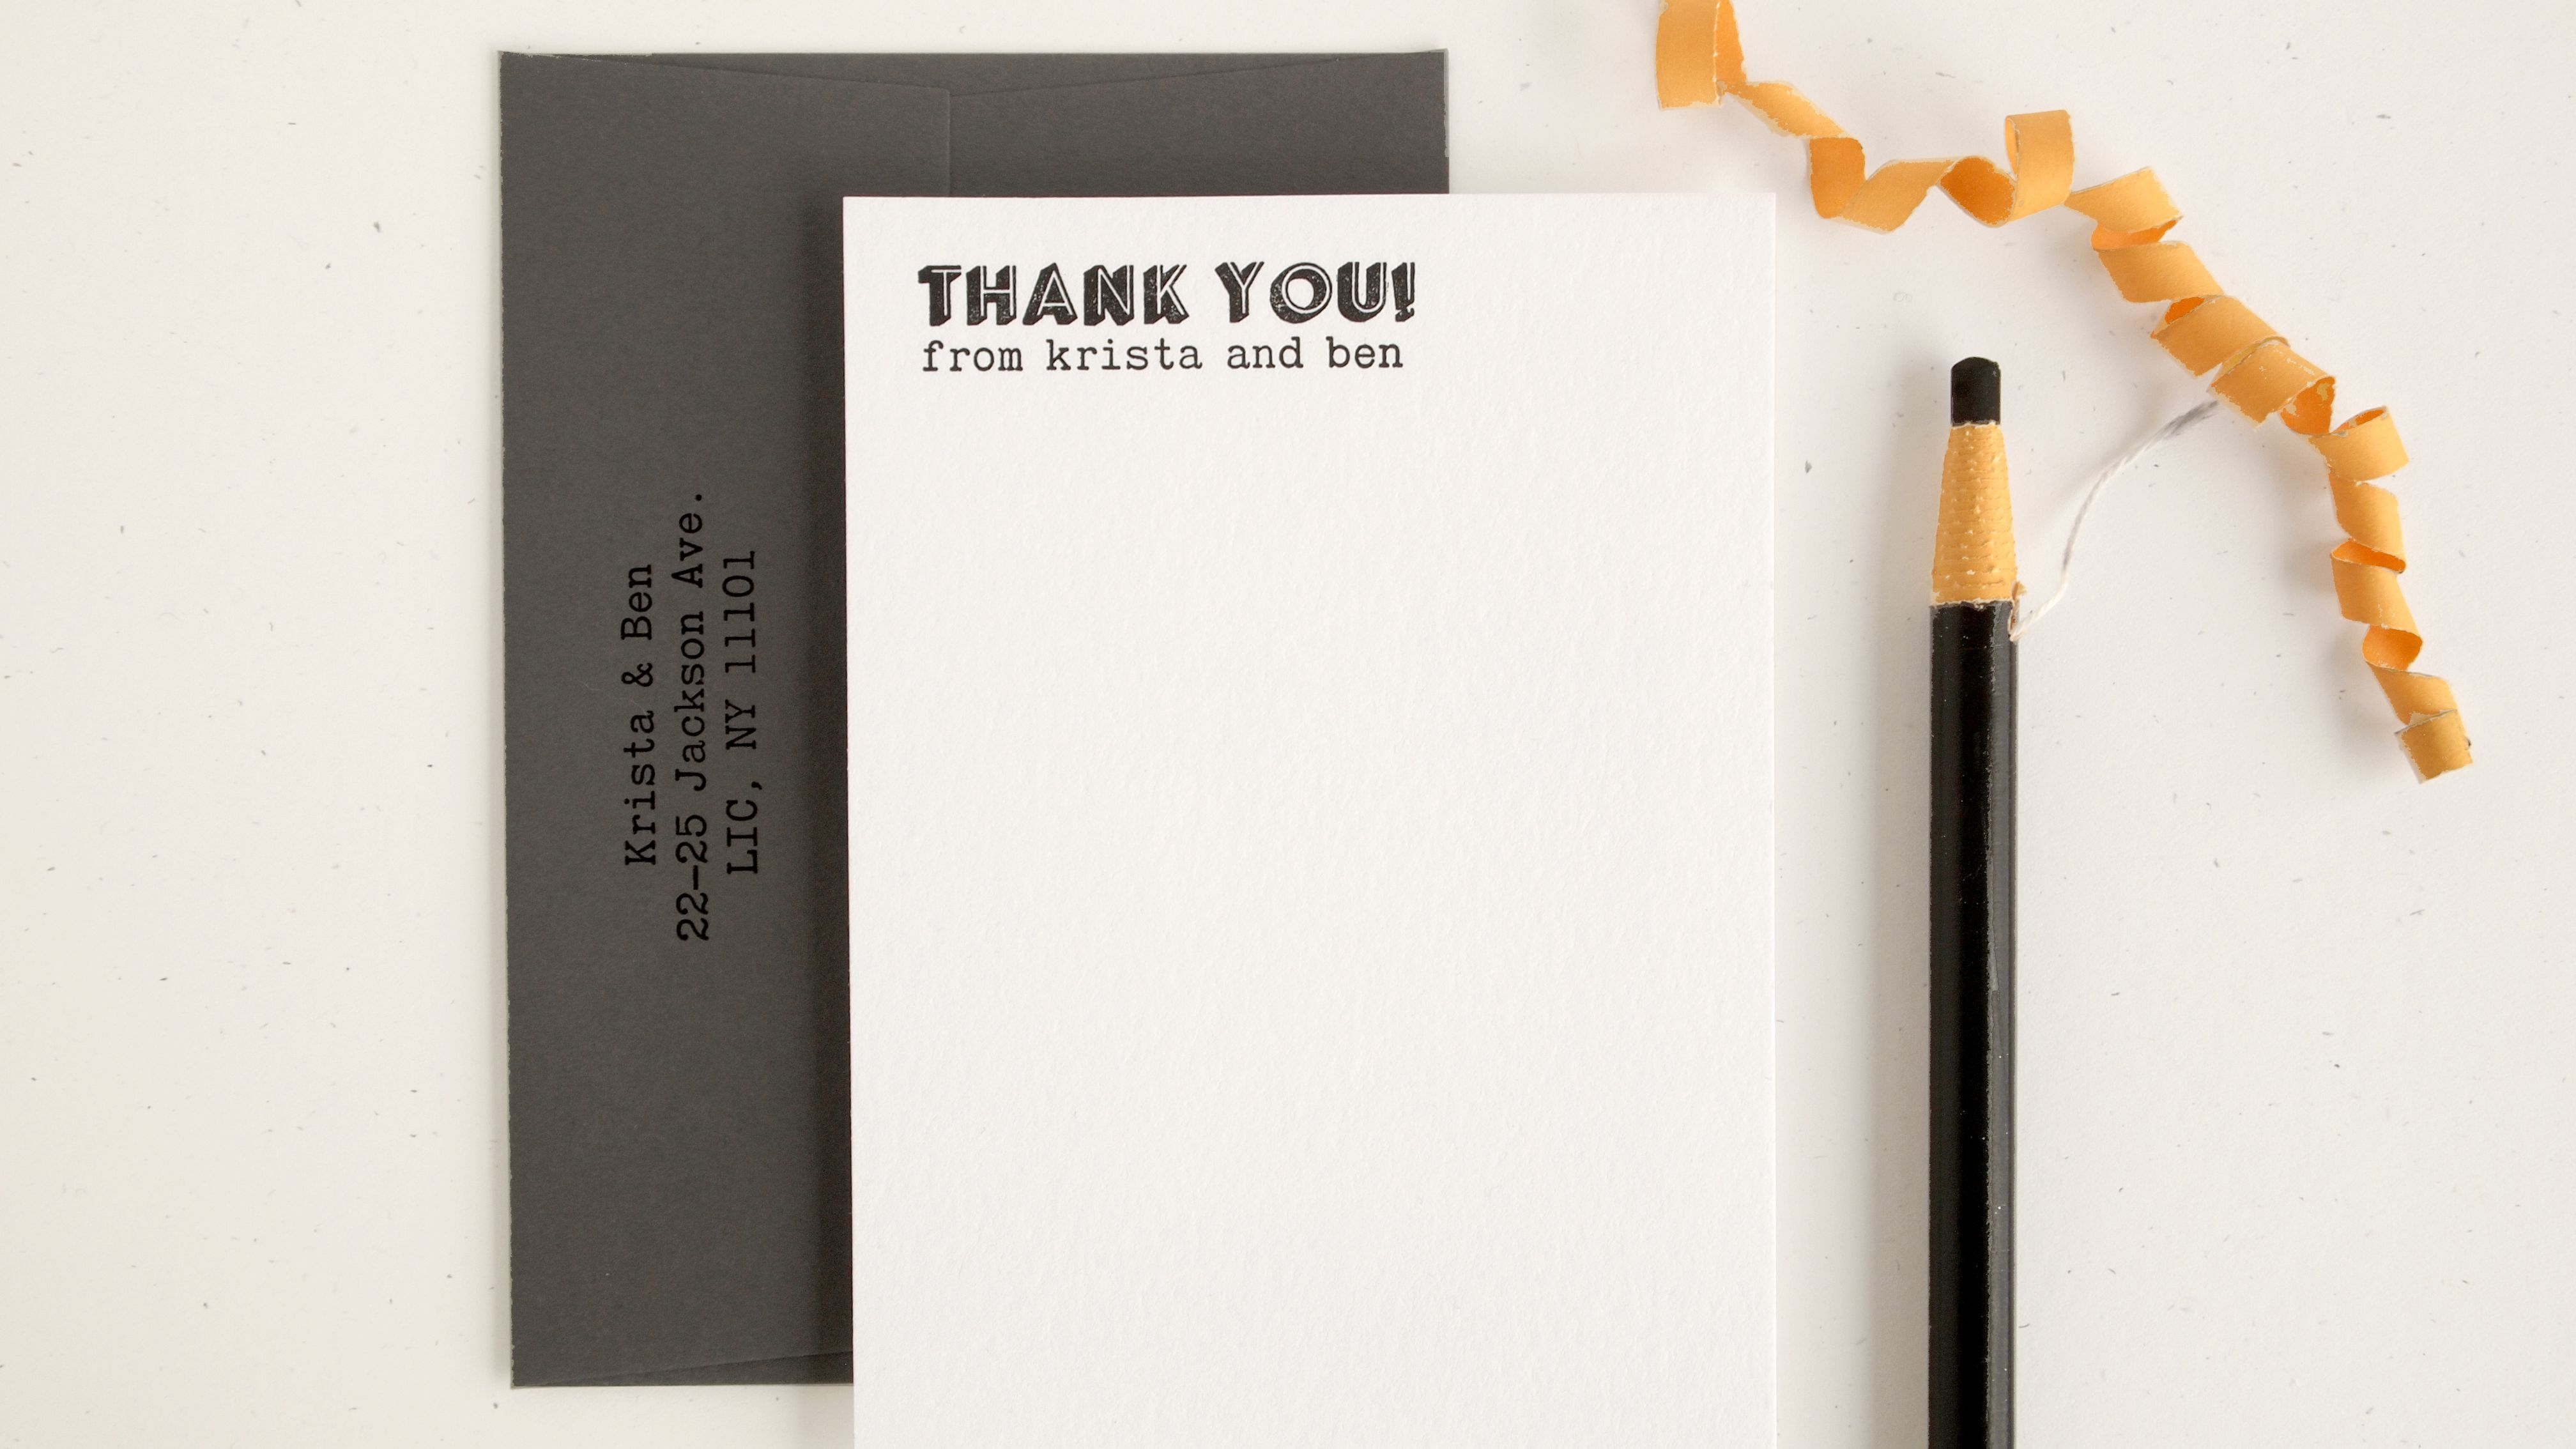 000 Stunning Thank You Note Template Wedding Money Idea  Card Example For Sample Cash GiftFull